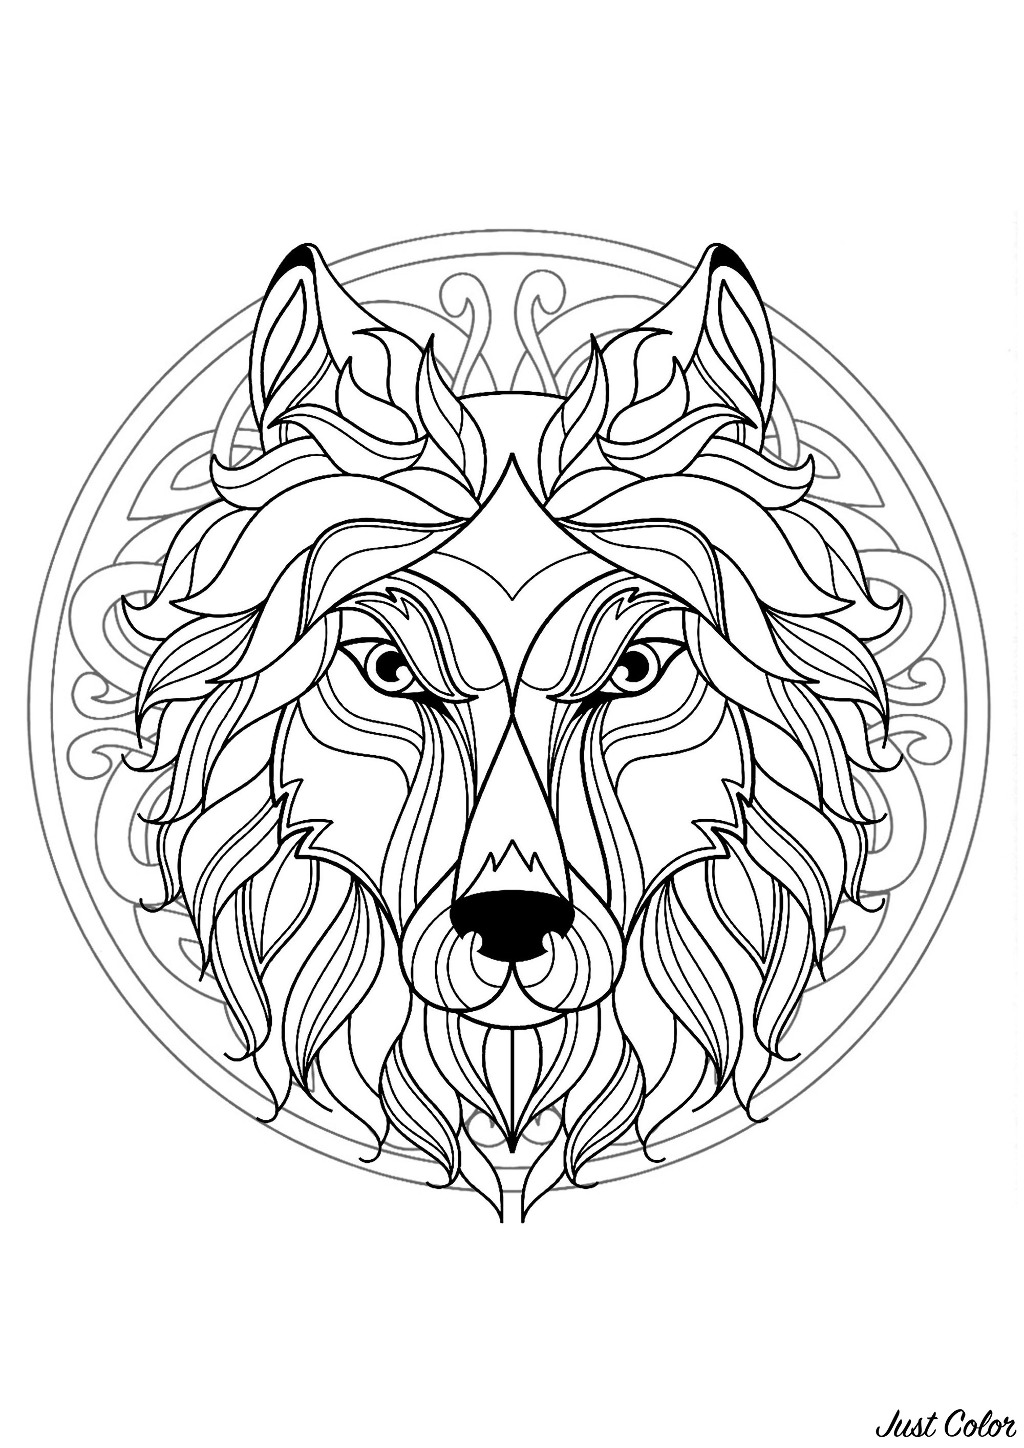 Mandala to color with Wolf head and complex patterns in background